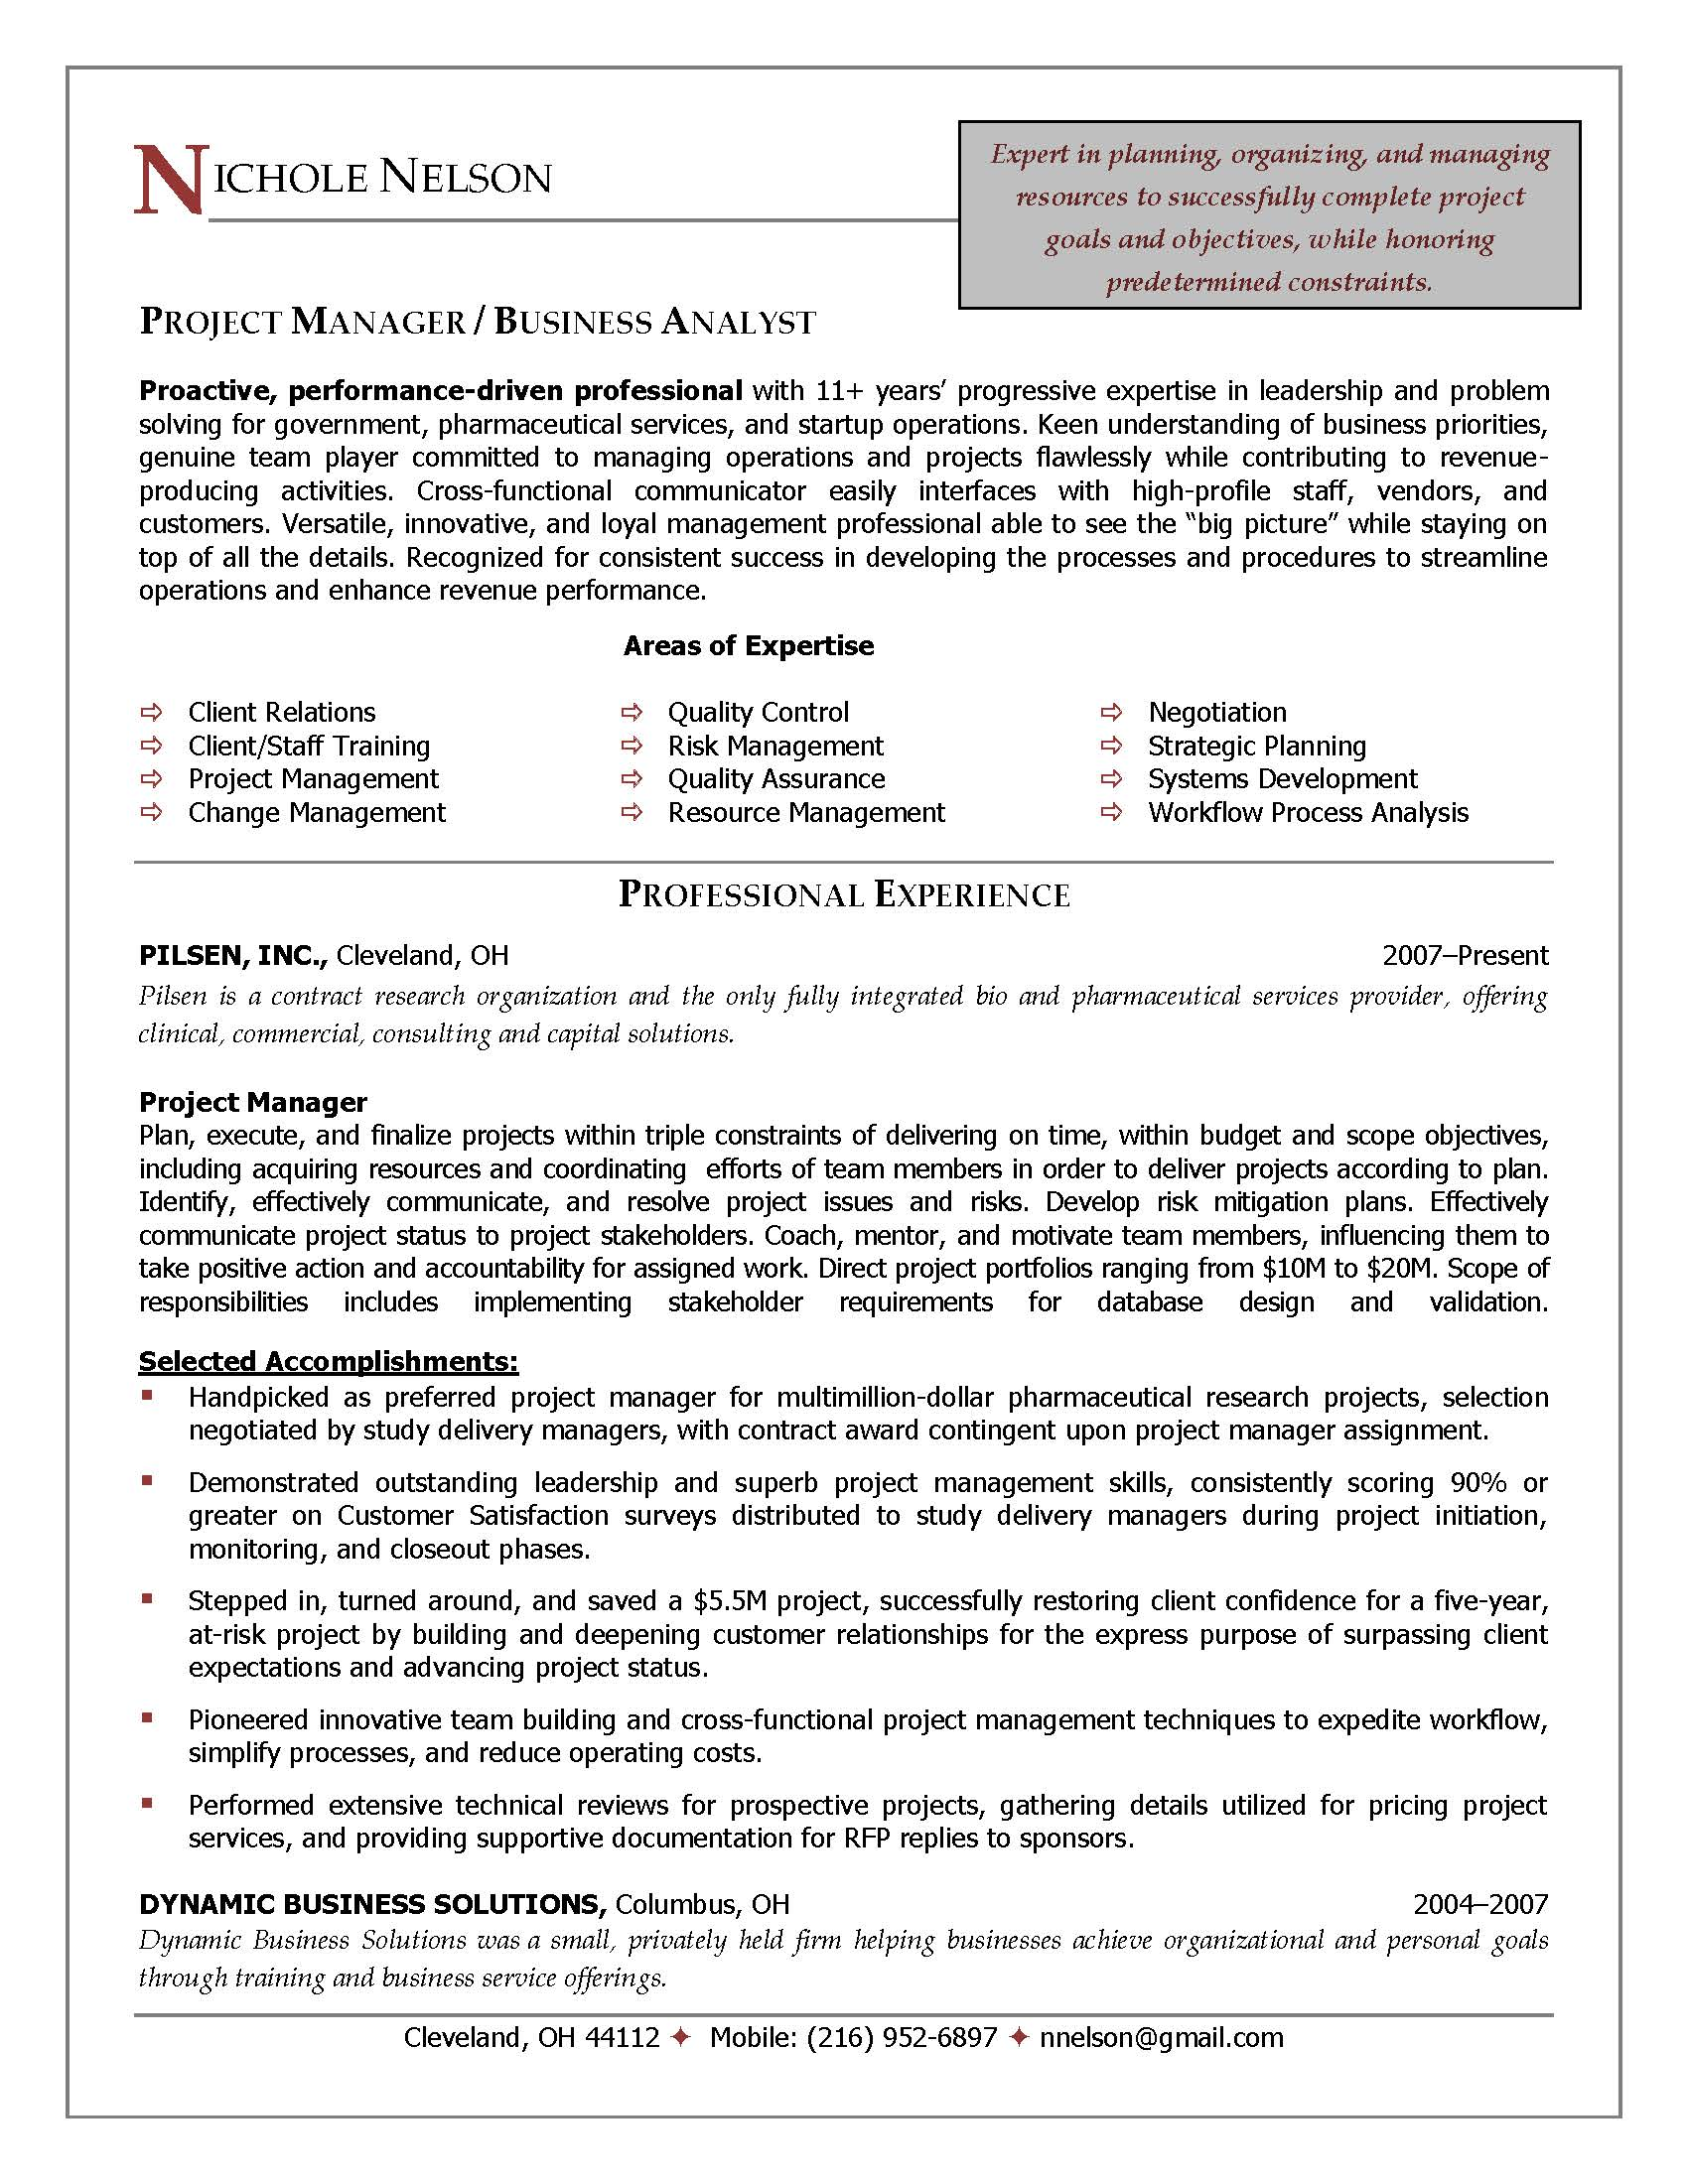 project manager resume sample provided by elite resume writing services - Project Management Resume Examples